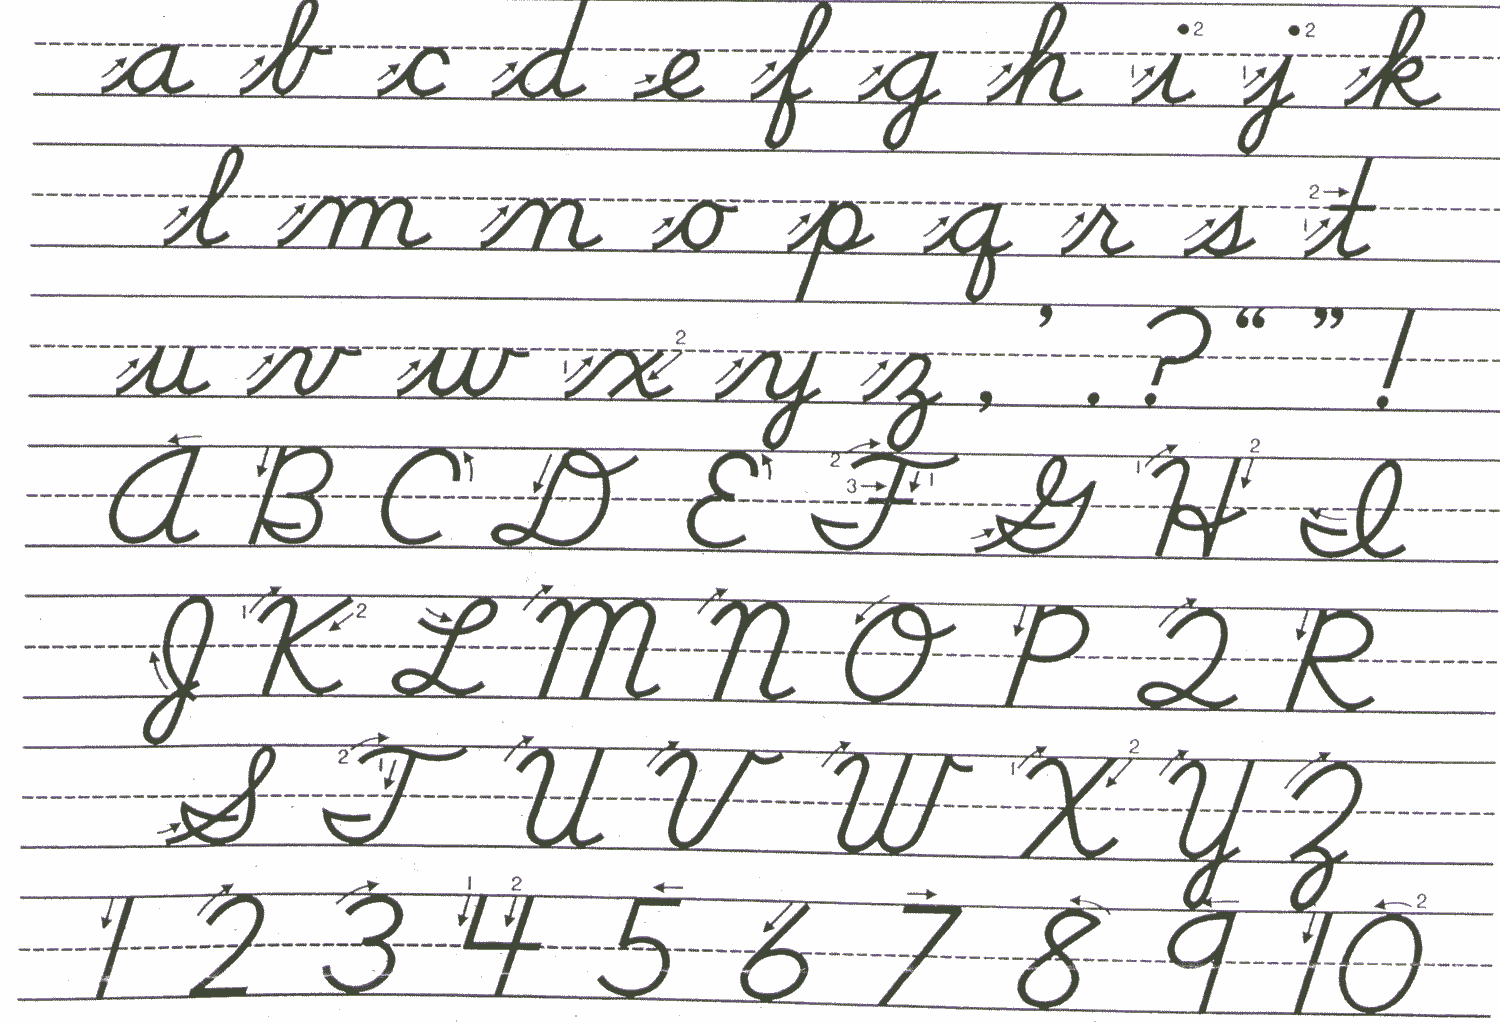 Labeled for noncommerical reuse via https://commons.wikimedia.org/wiki/File:Cursive.png under the Creative Commons Licences